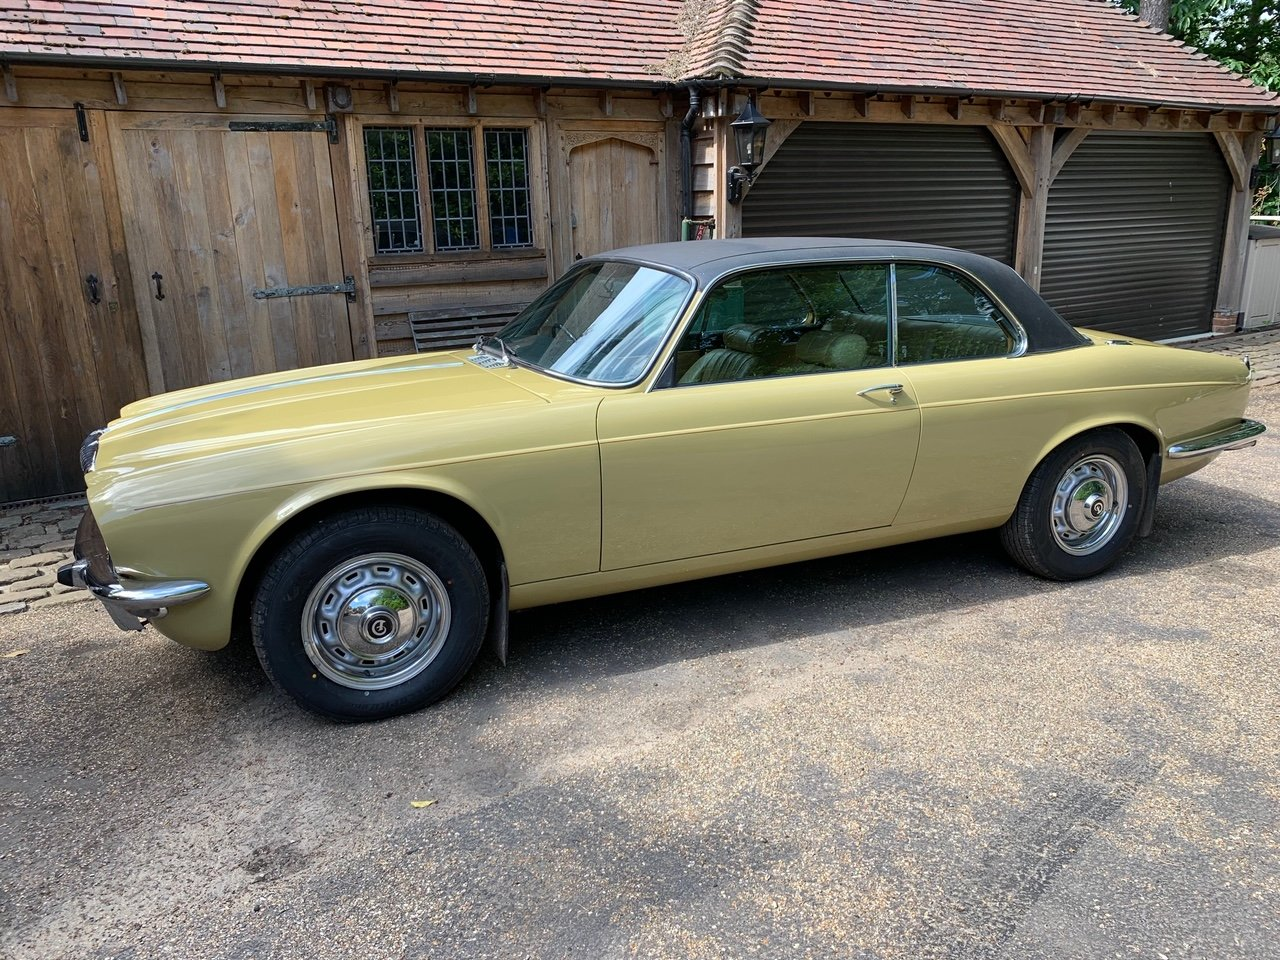 1976 Daimler Coupe 1 owner SOLD classic Jags/Daimlers wanted For Sale (picture 1 of 6)